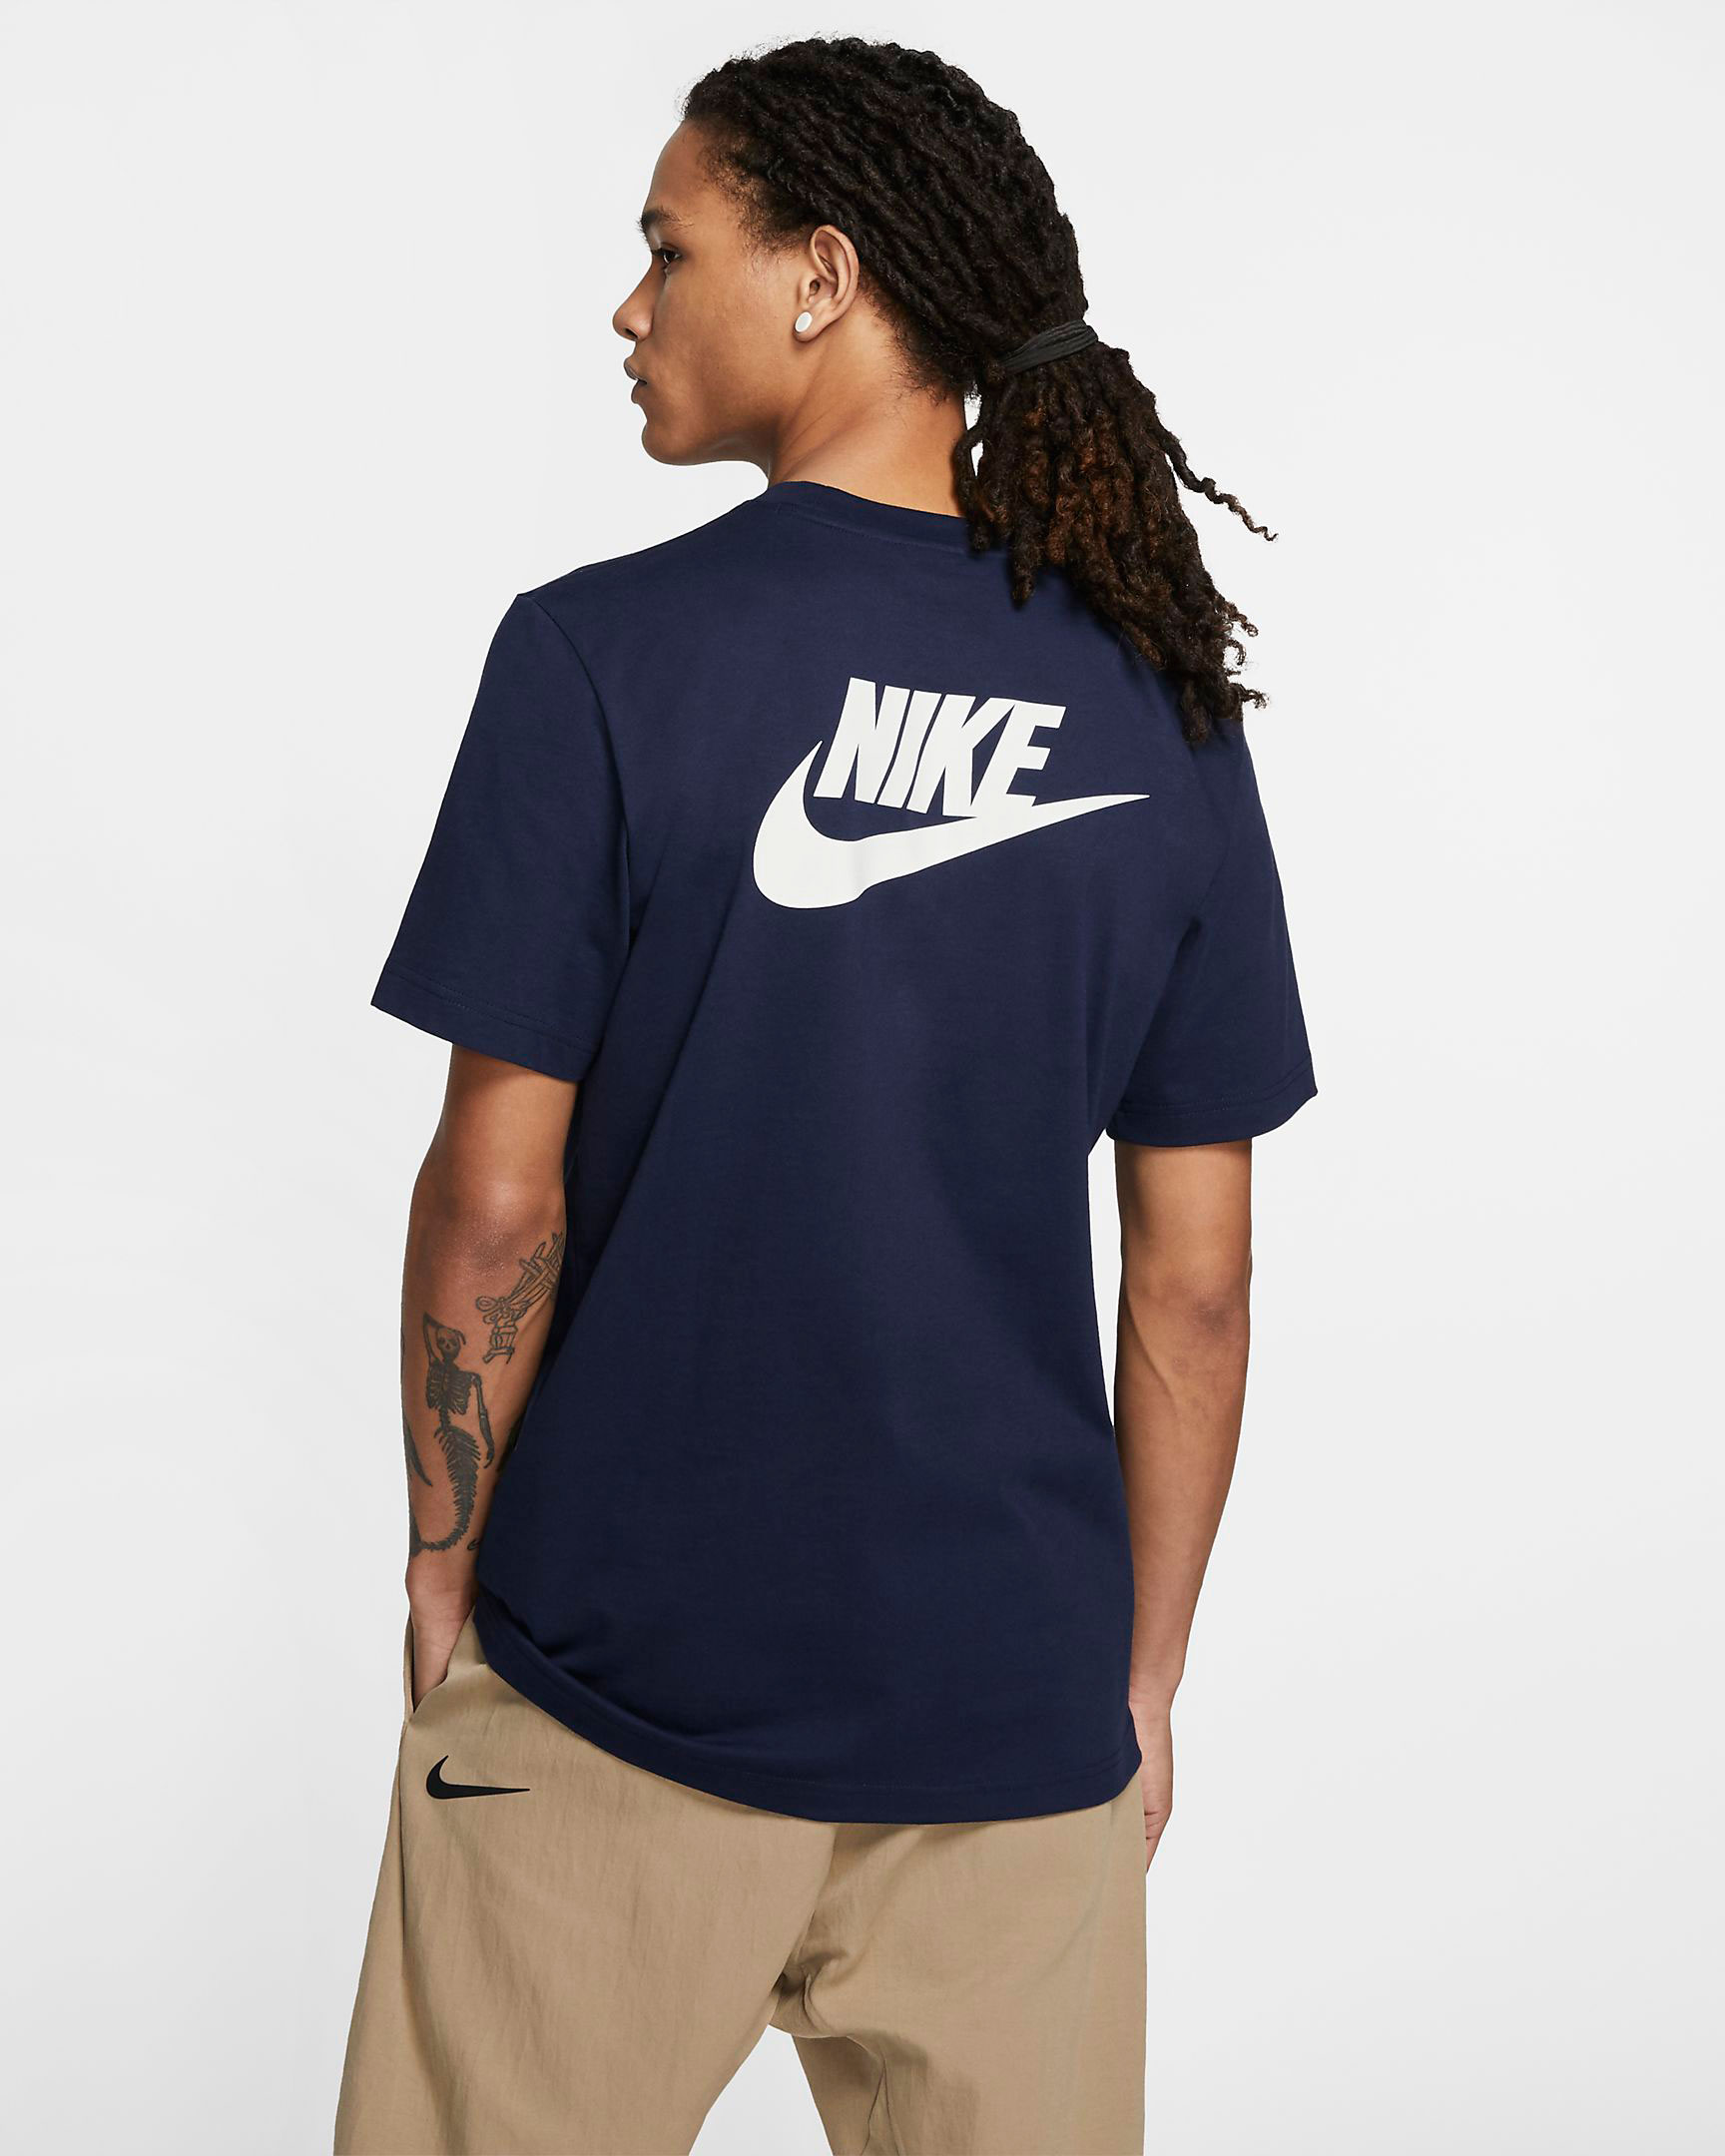 nike-stranger-things-og-4th-july-navy-shirt-2